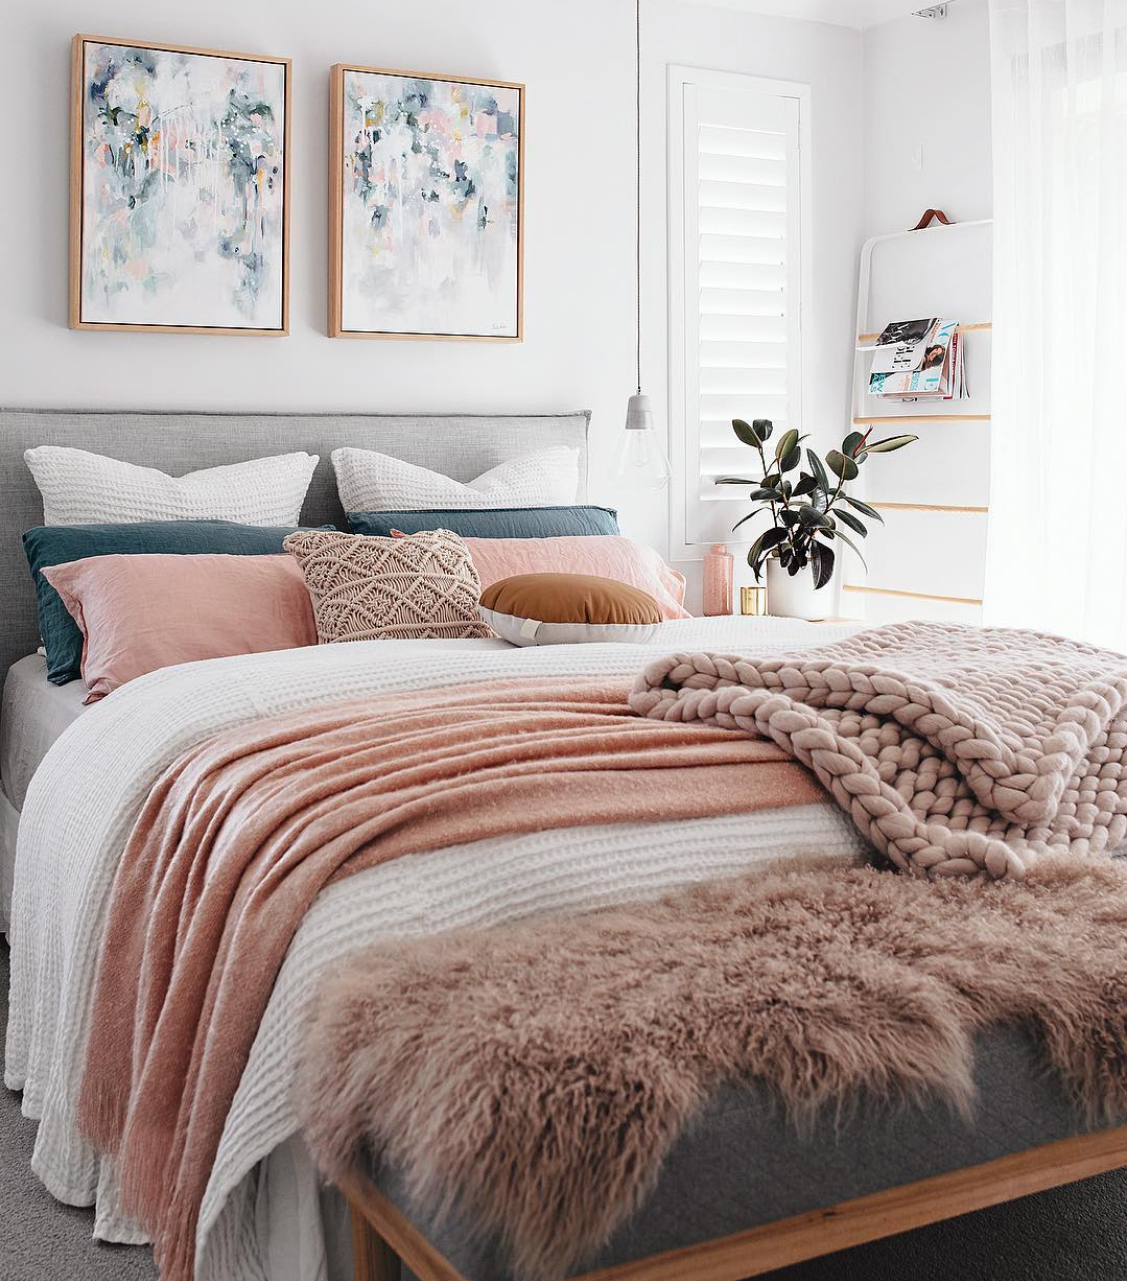 Top Tips: The Best Way To Layer Your Bed For Winter